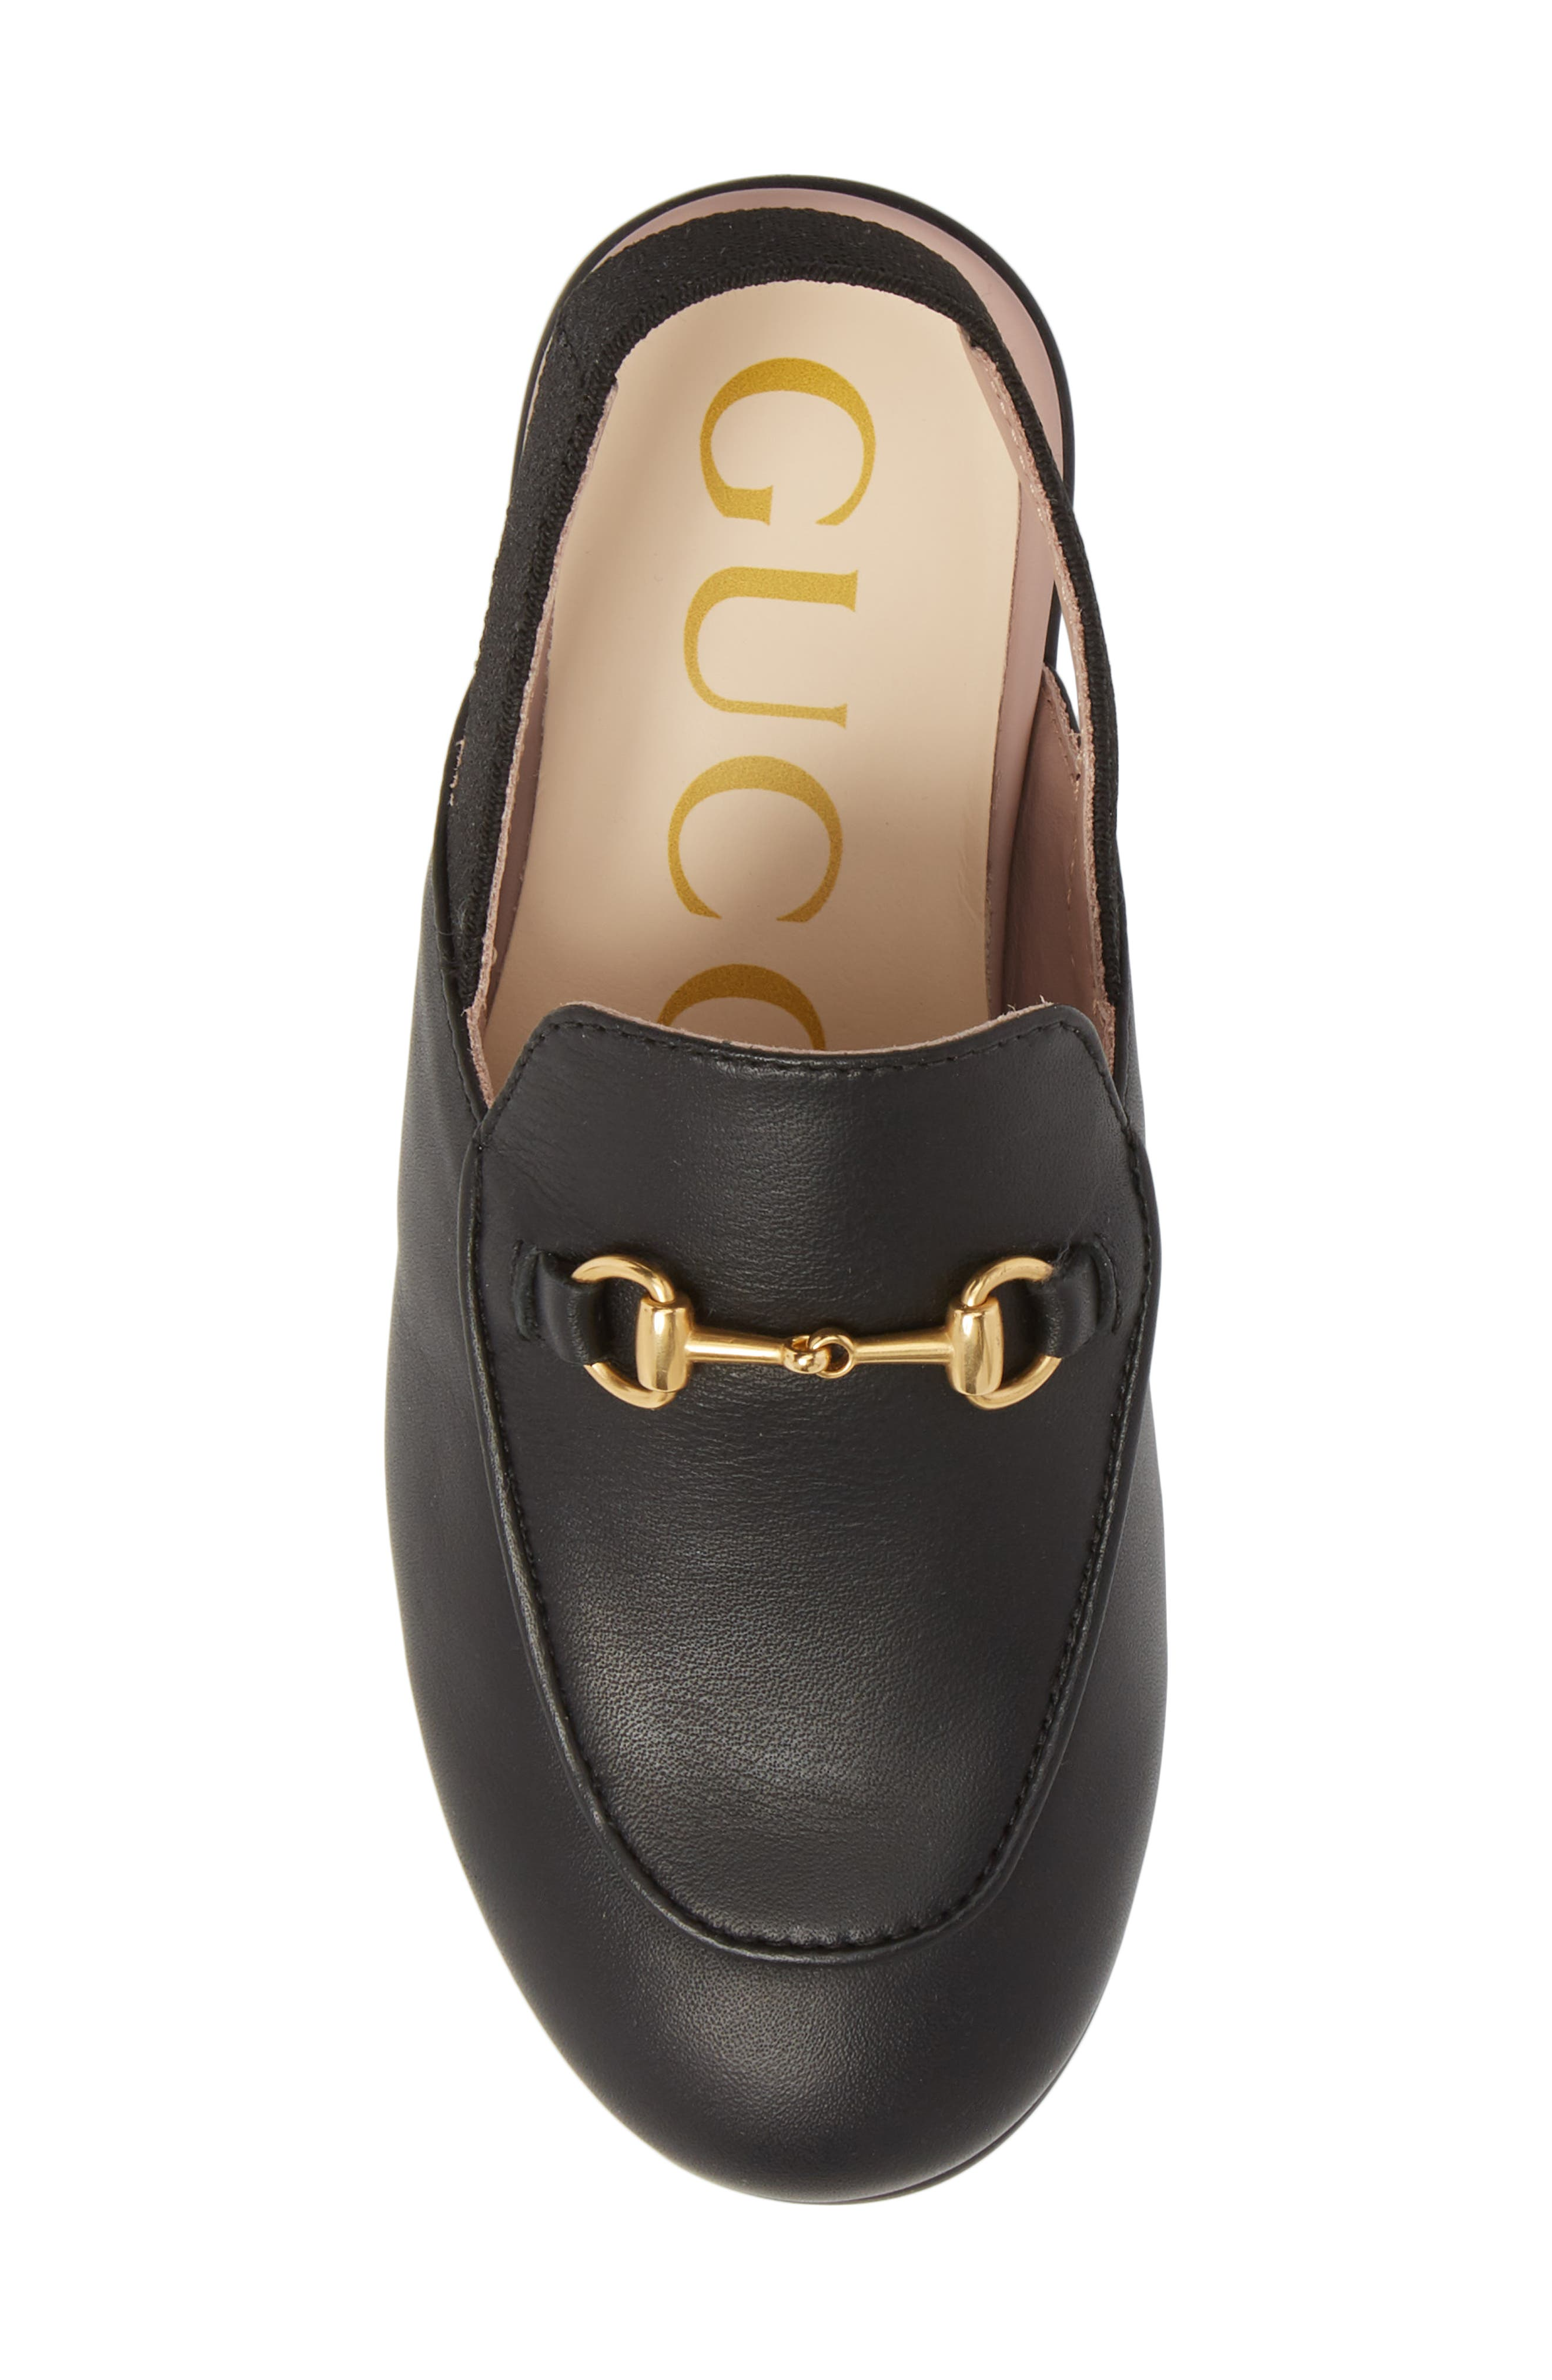 GUCCI, Princetown Loafer Mule, Alternate thumbnail 5, color, BLACK/ BLACK